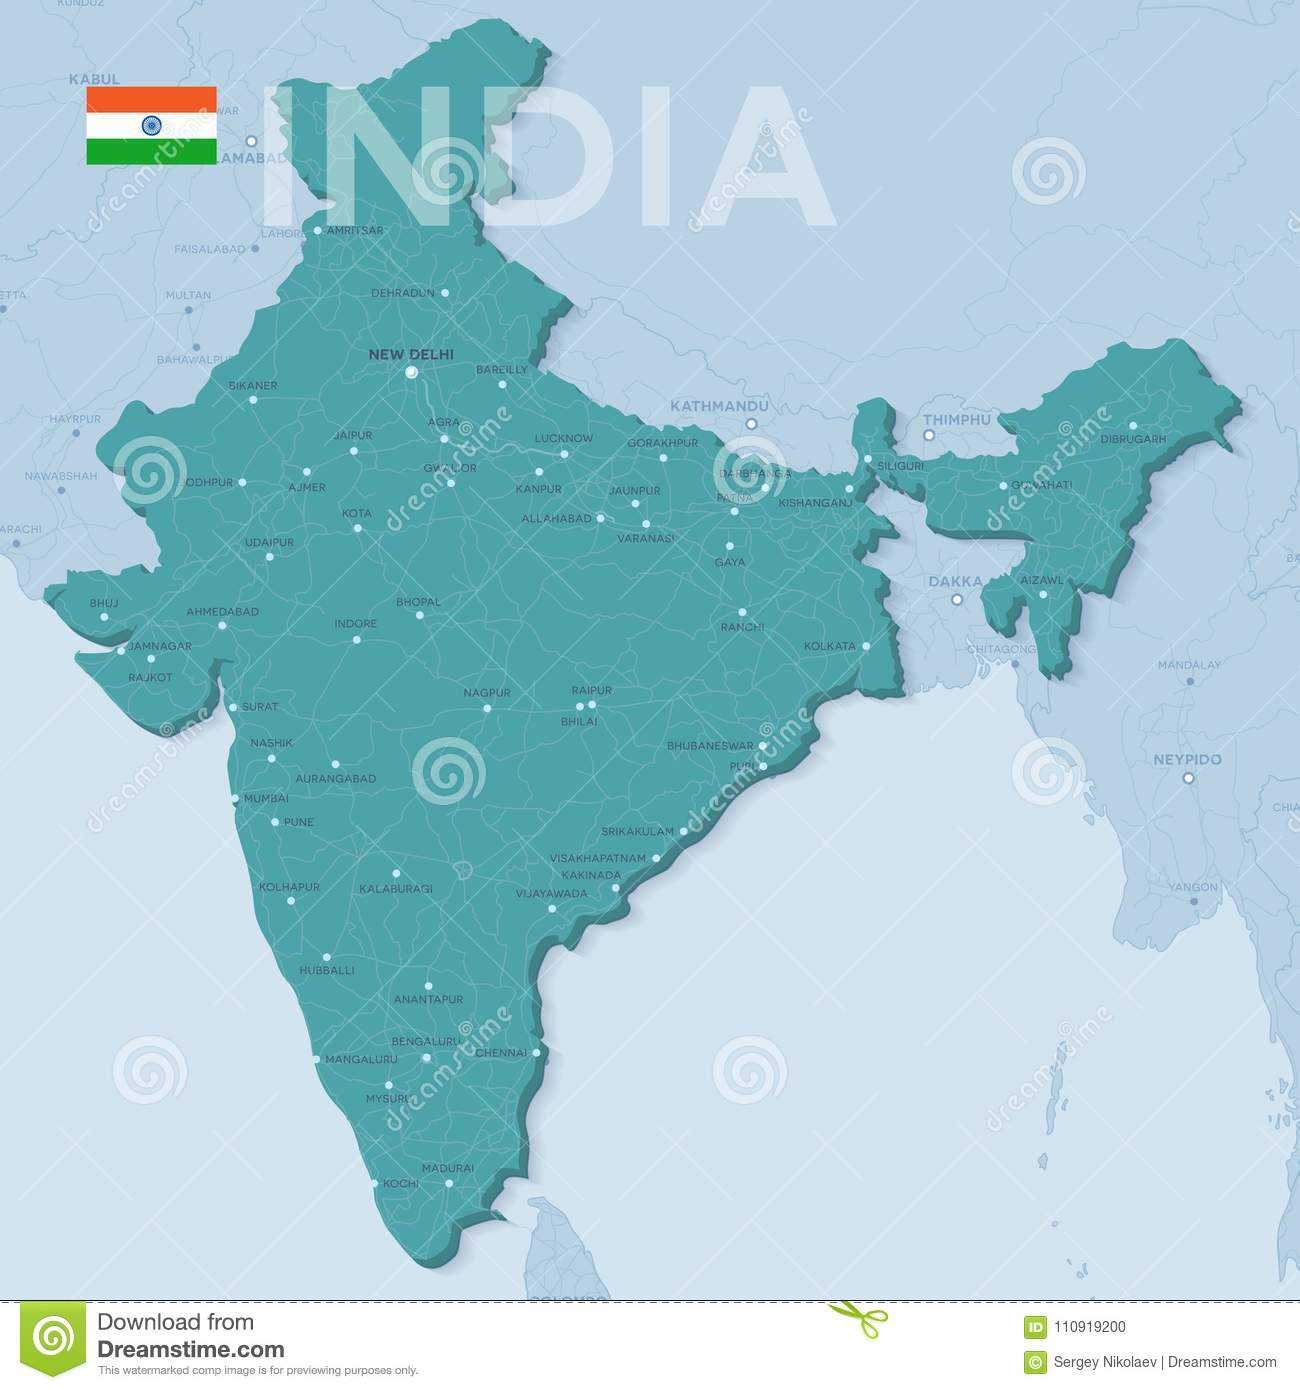 Verctor Map Of Cities And Roads In India. Stock Vector ...